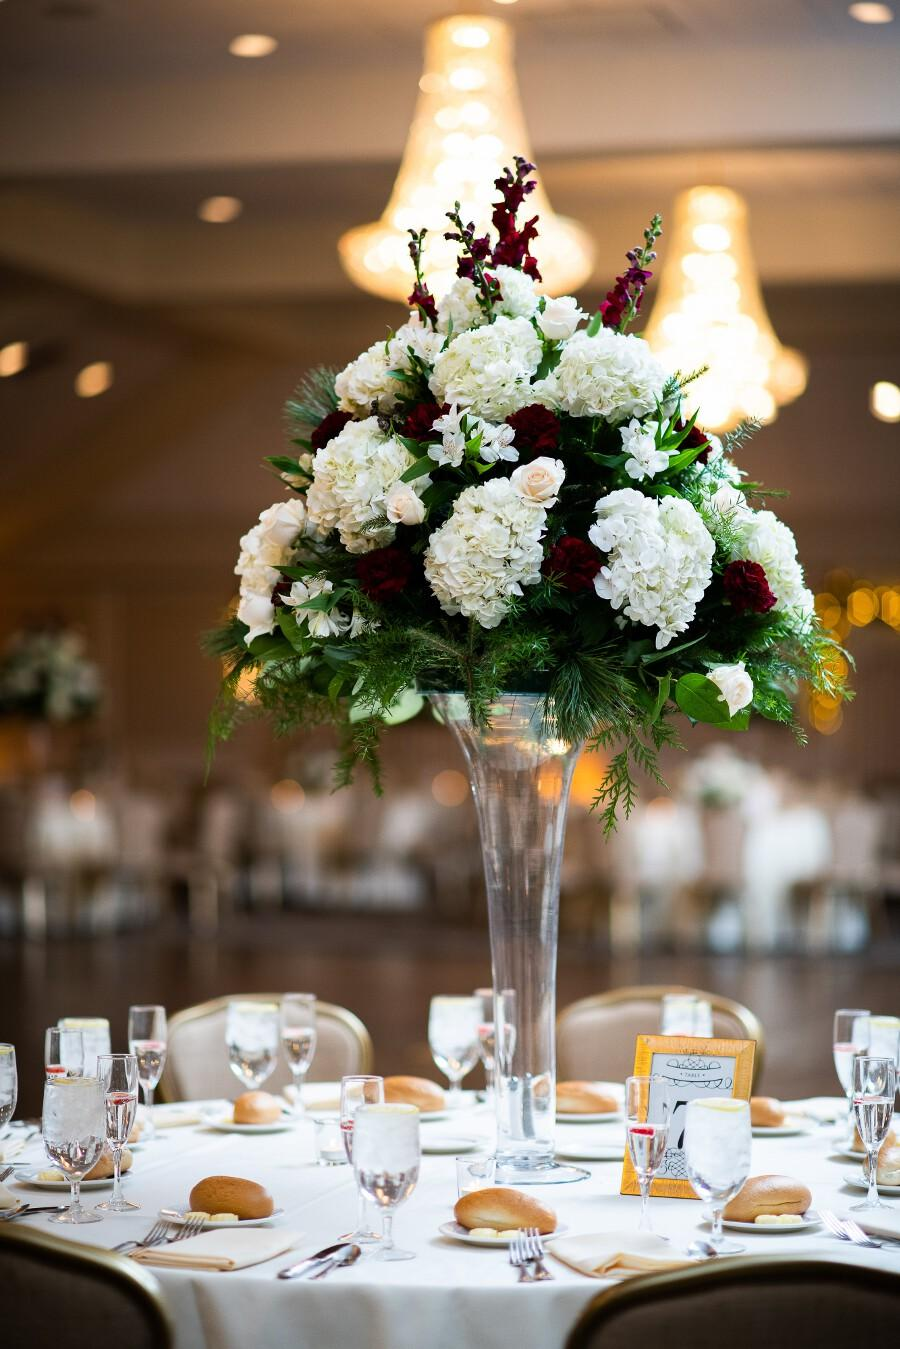 Tall floral arrangement with white, burgundy, and pale pink flowers and greenery